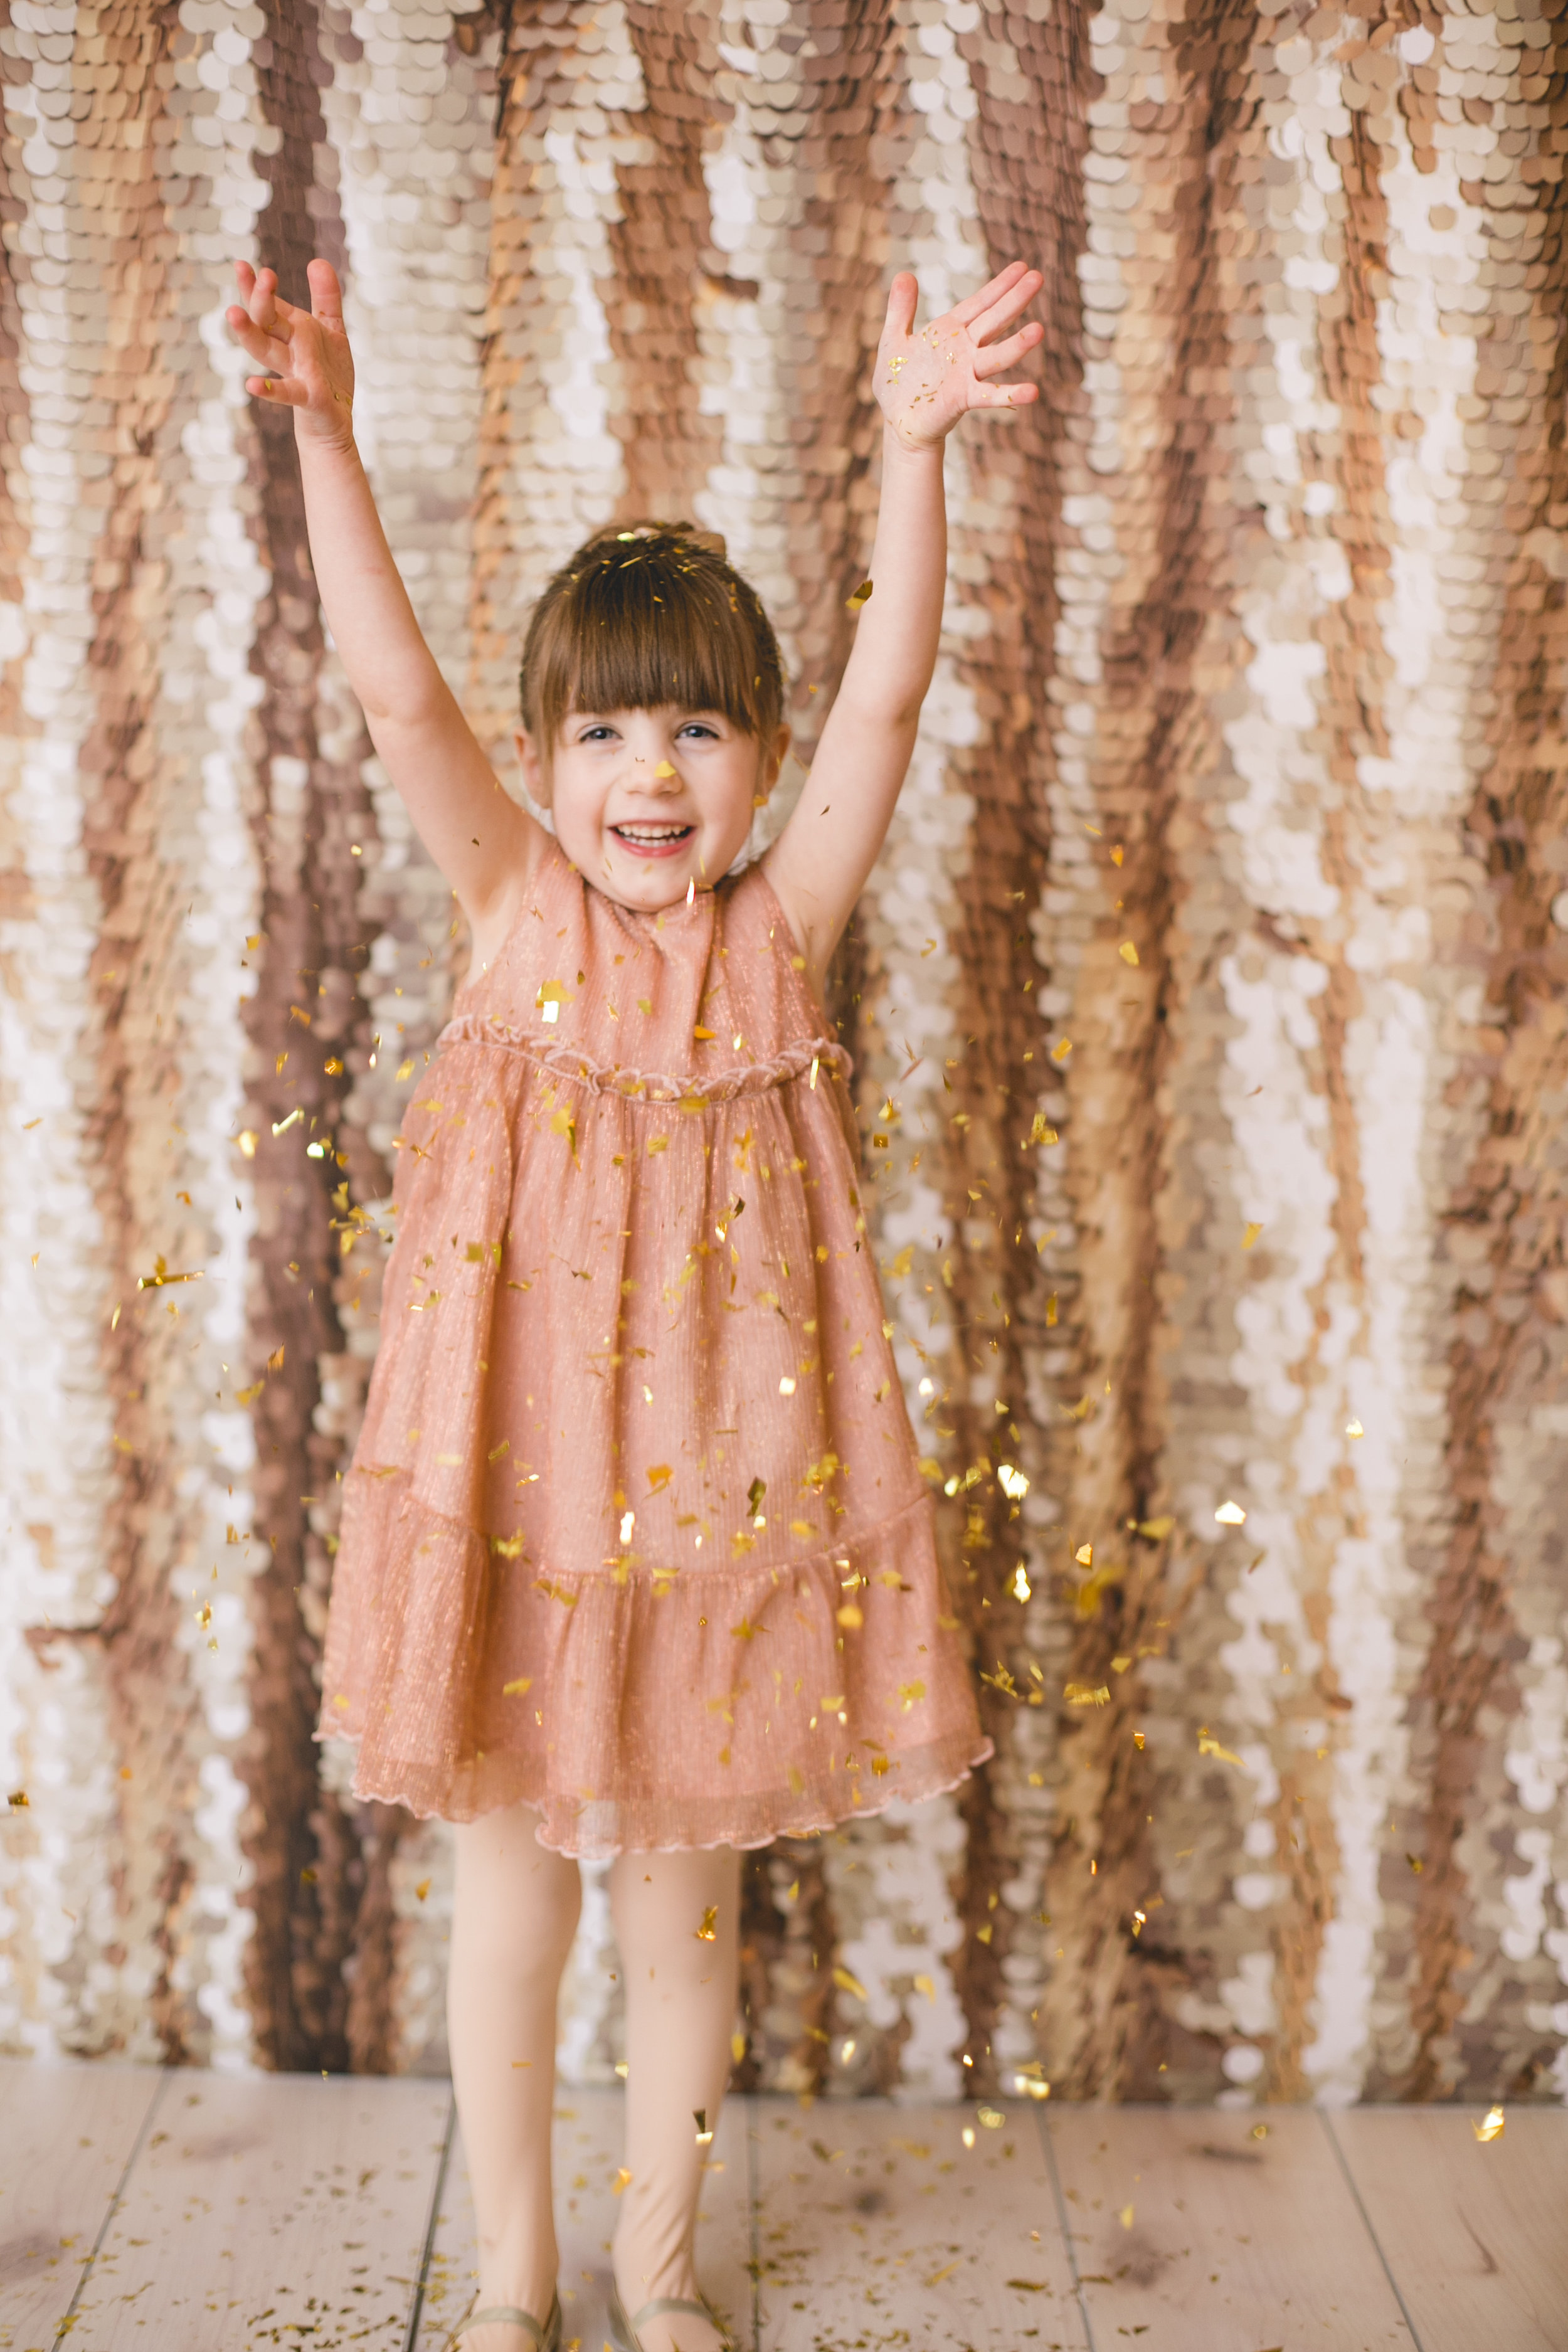 Sparkle Sessions - Date: Jan. 12 and 19, 2019Length of session: 20 minutesCost: $75Number of Photos: 5Print ReleaseLocation: 306 Main Street in StevensvilleContact me to book.